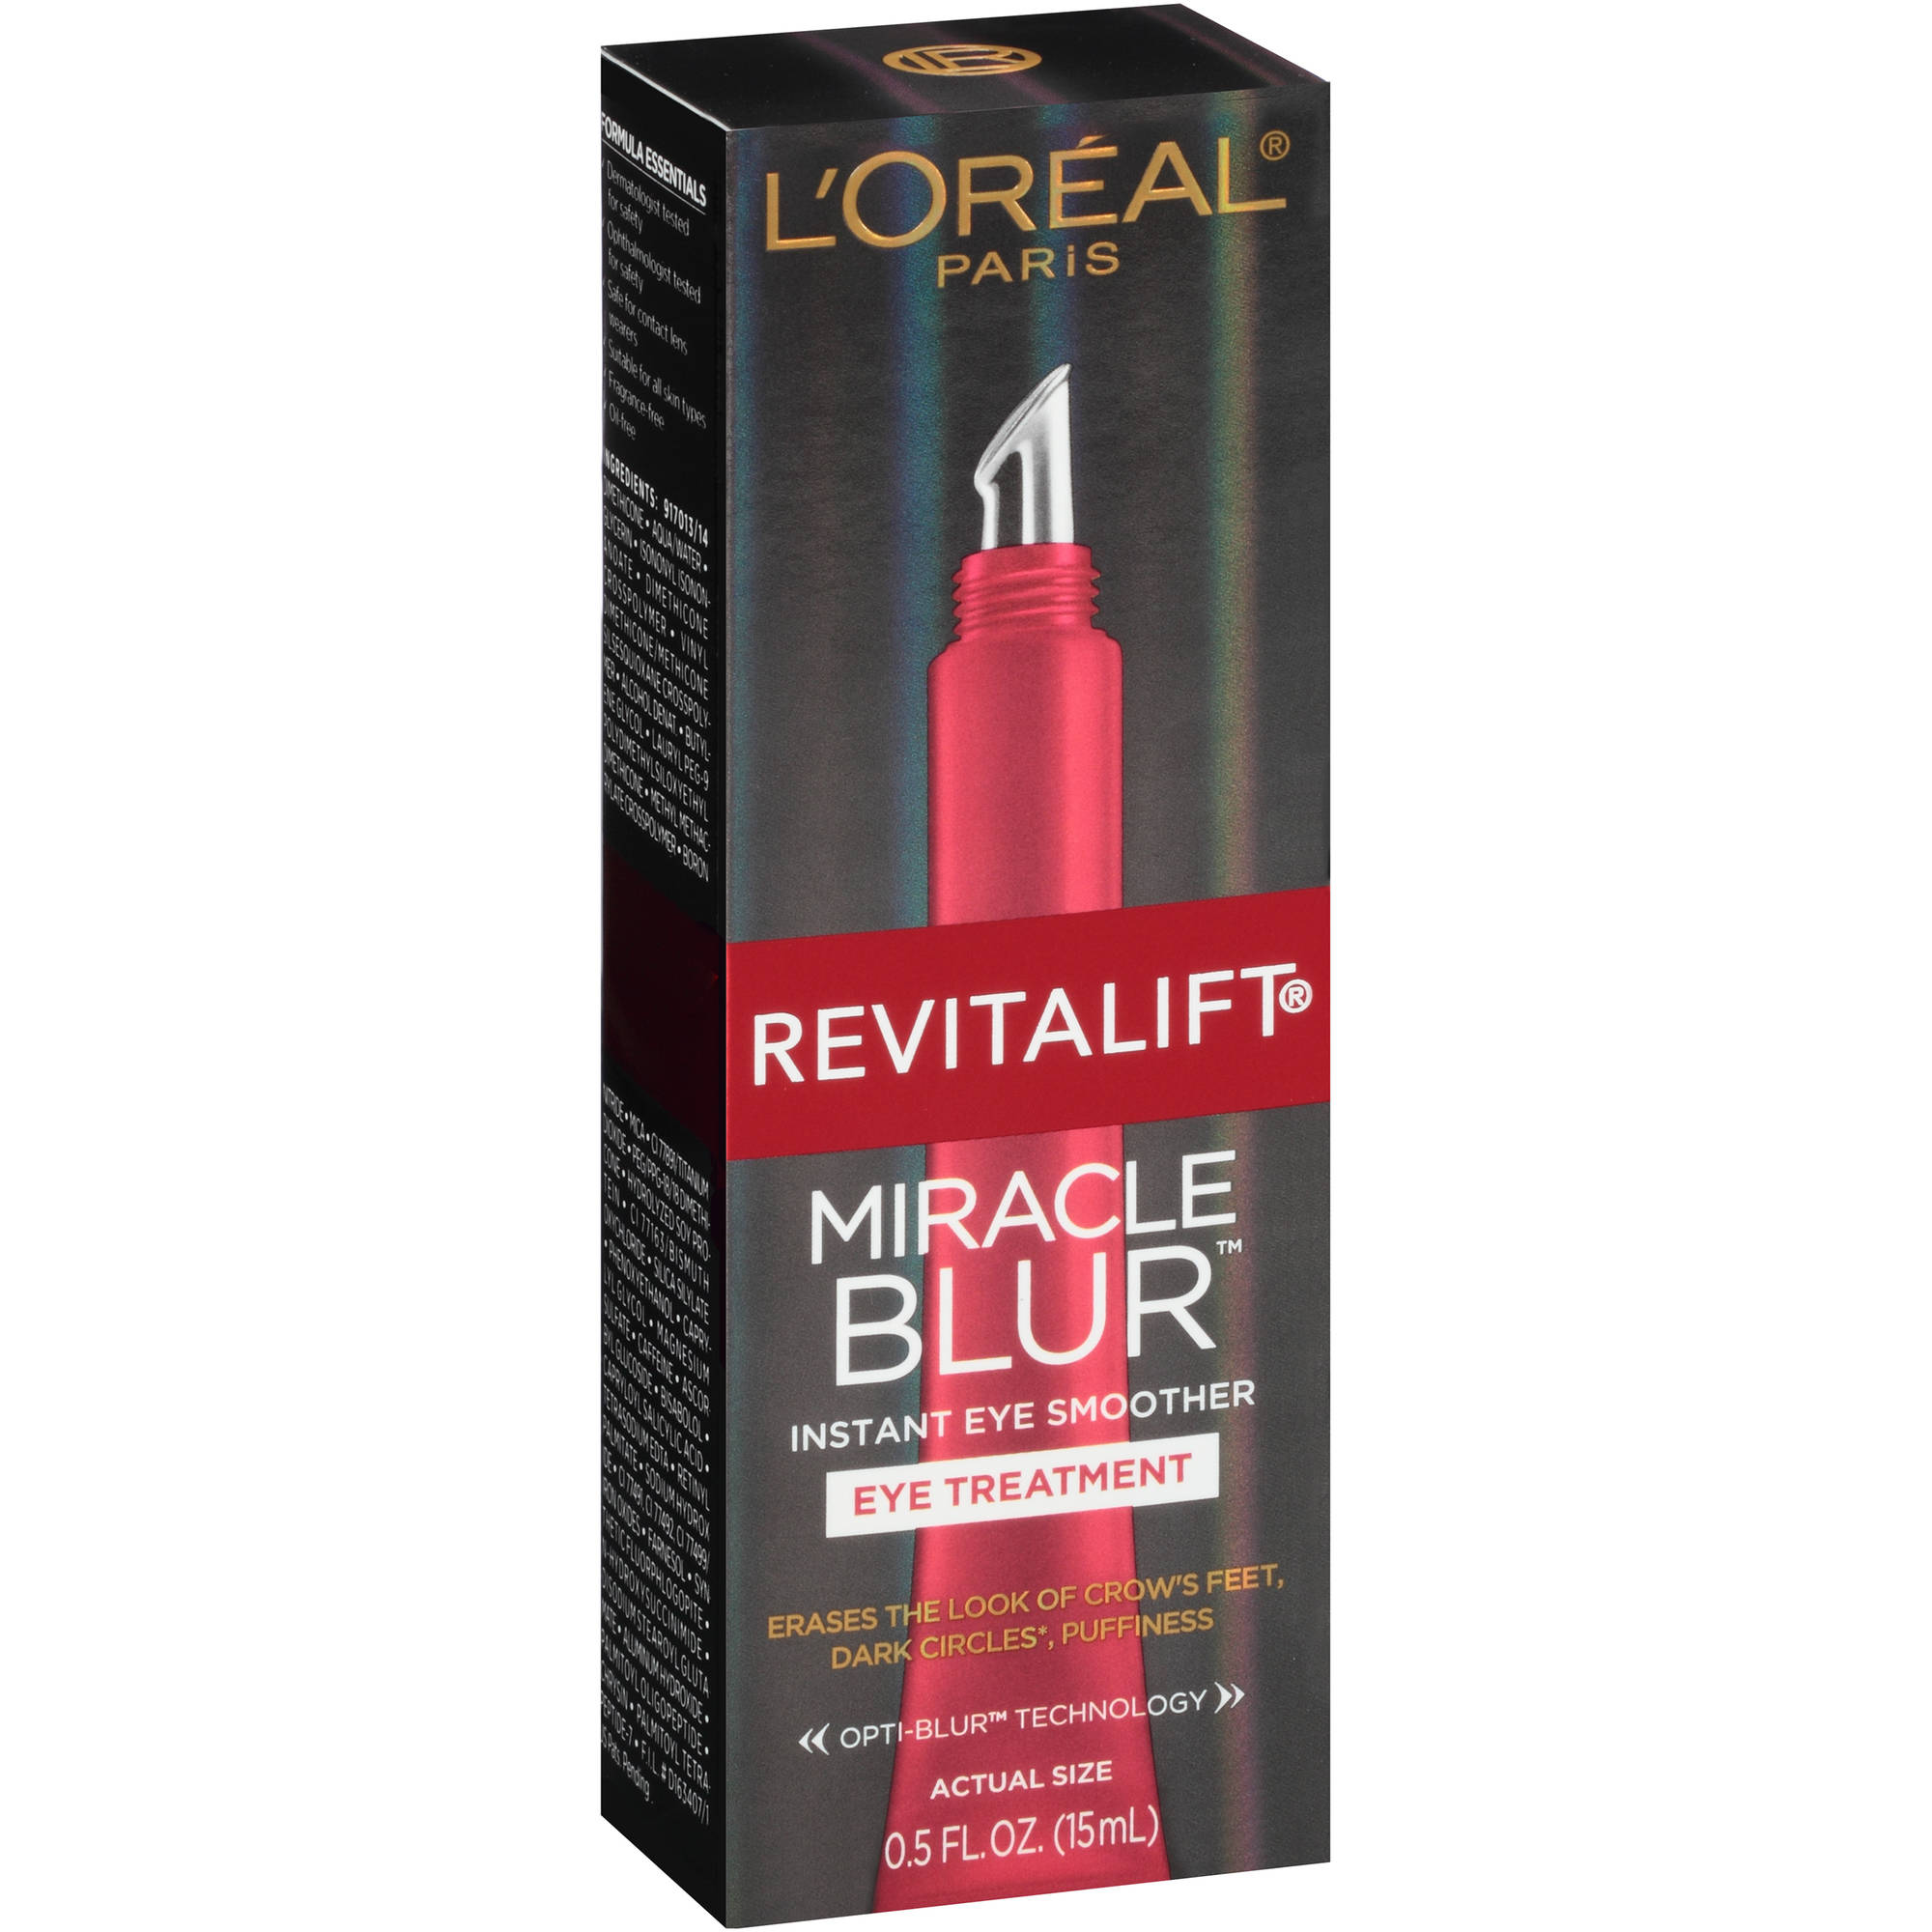 L'Oreal Paris Revitalift Miracle Blur Eye Instant Eye Smoother Eye Treatment